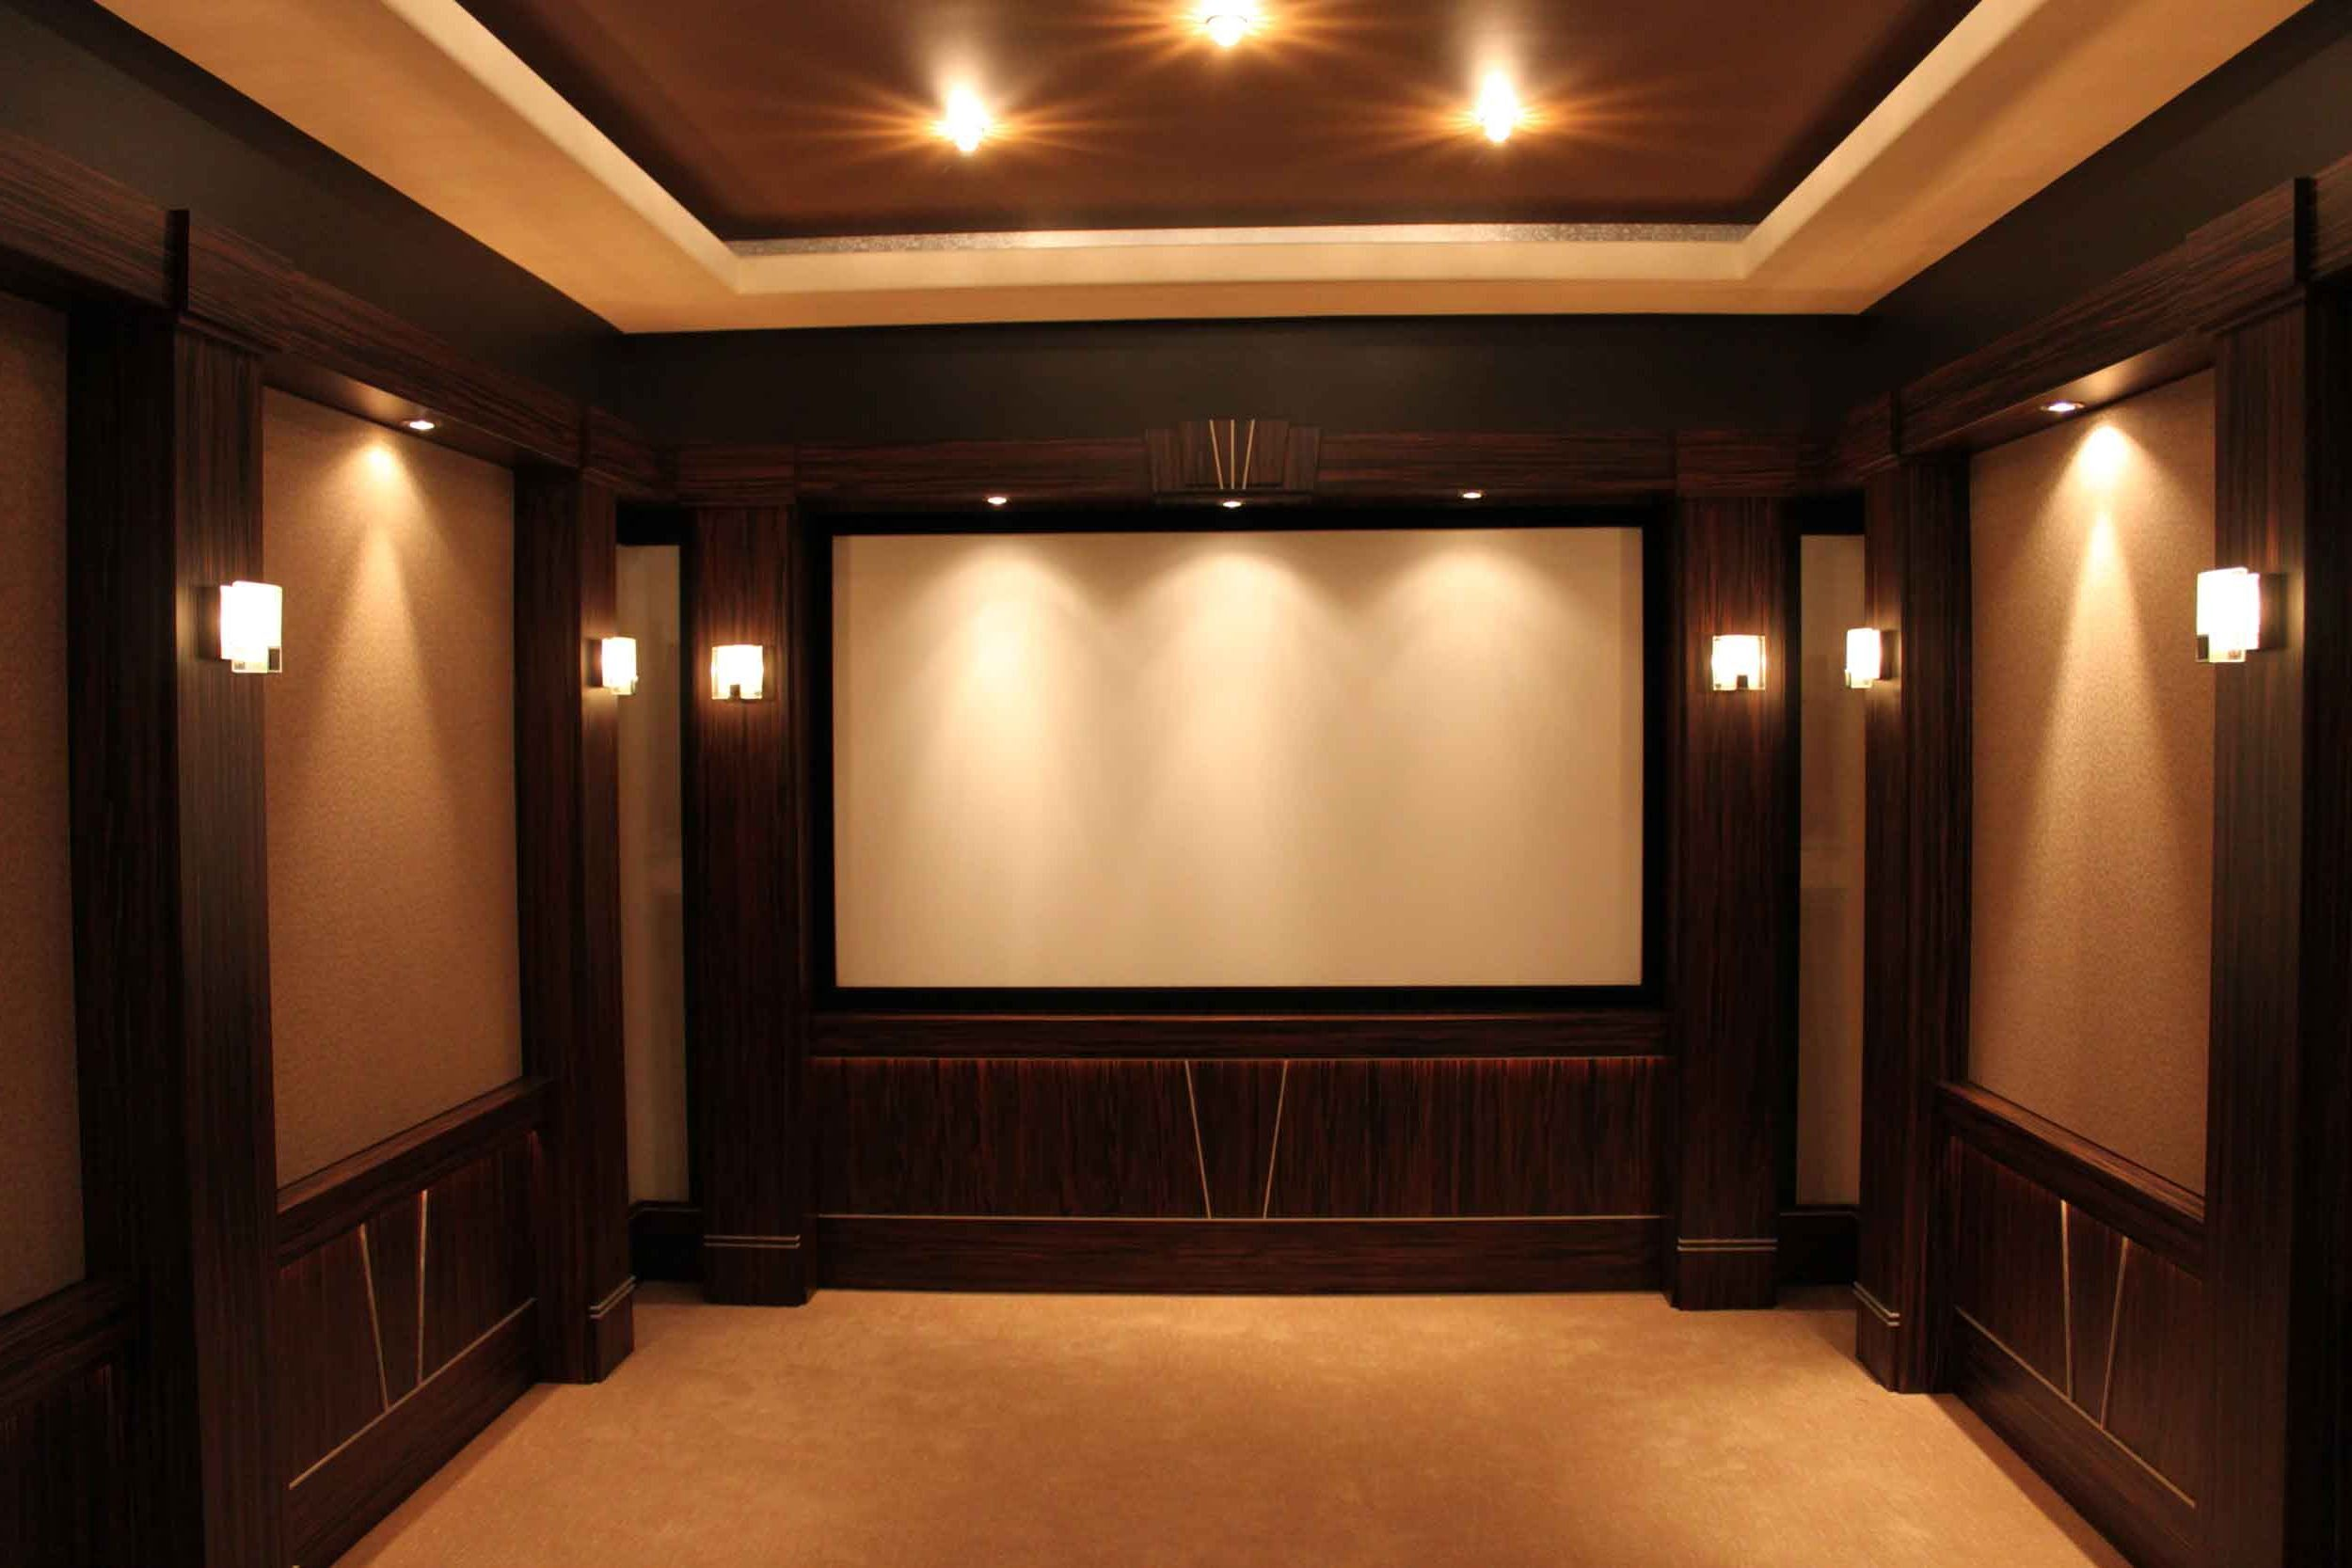 Superior Interior Small Home Theater Room Ideas Big Screen On The Beige Wall Long  Table Bar Movie Part 11